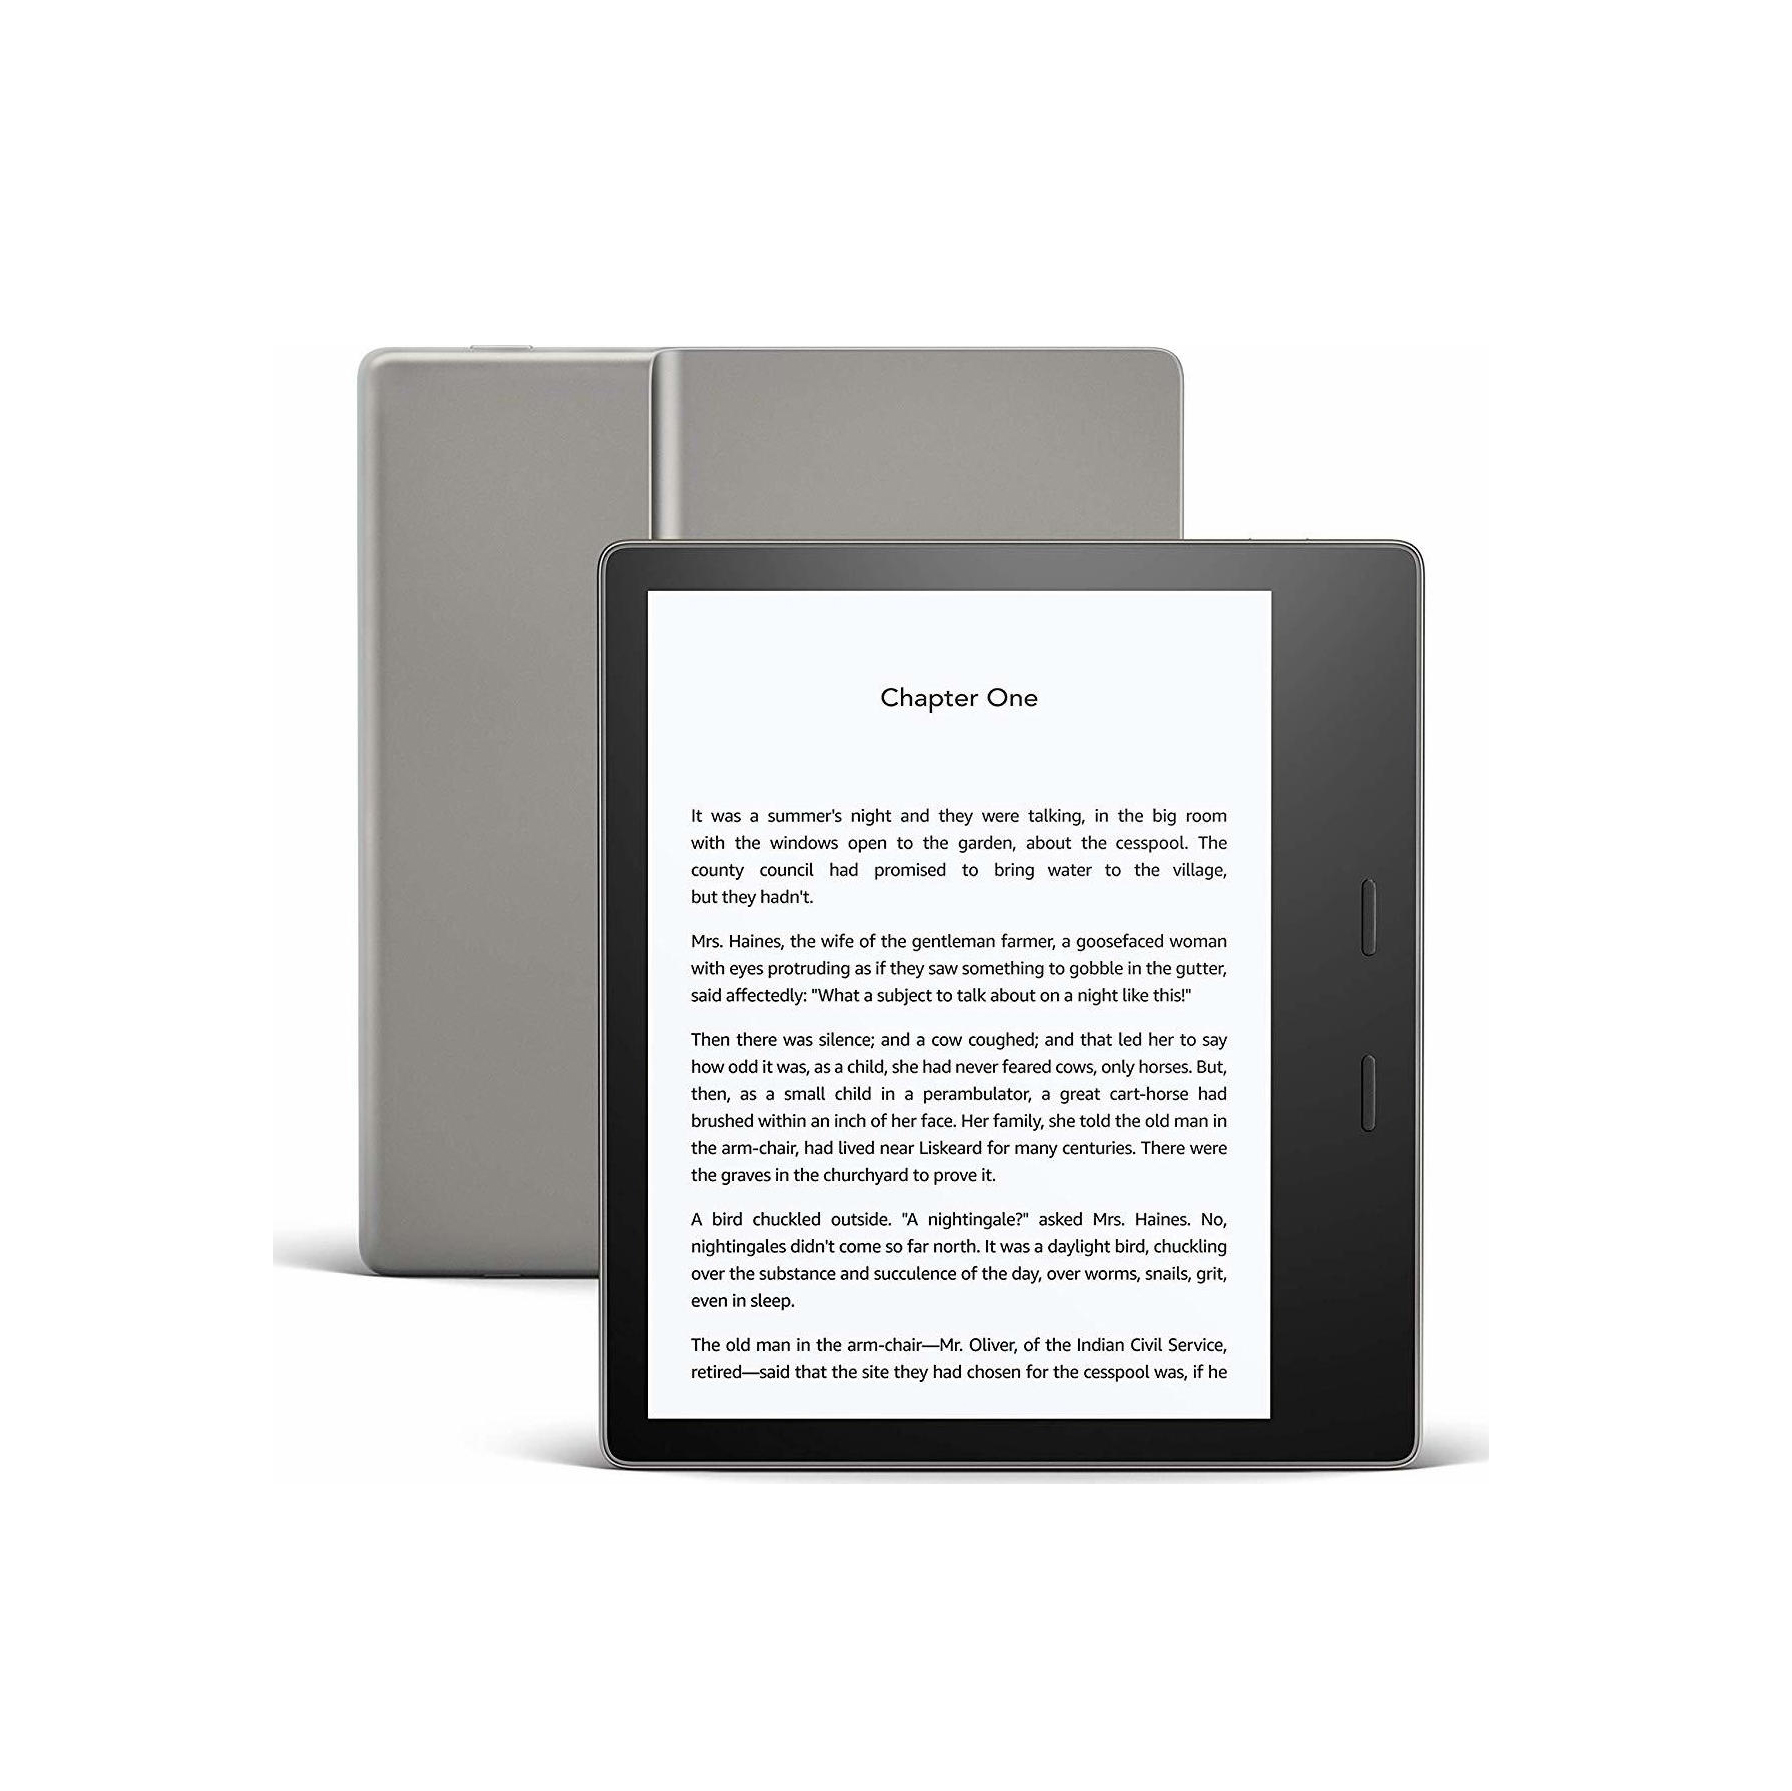 Amazon Kindle Oasis 8GB Ebook Reader Graphite